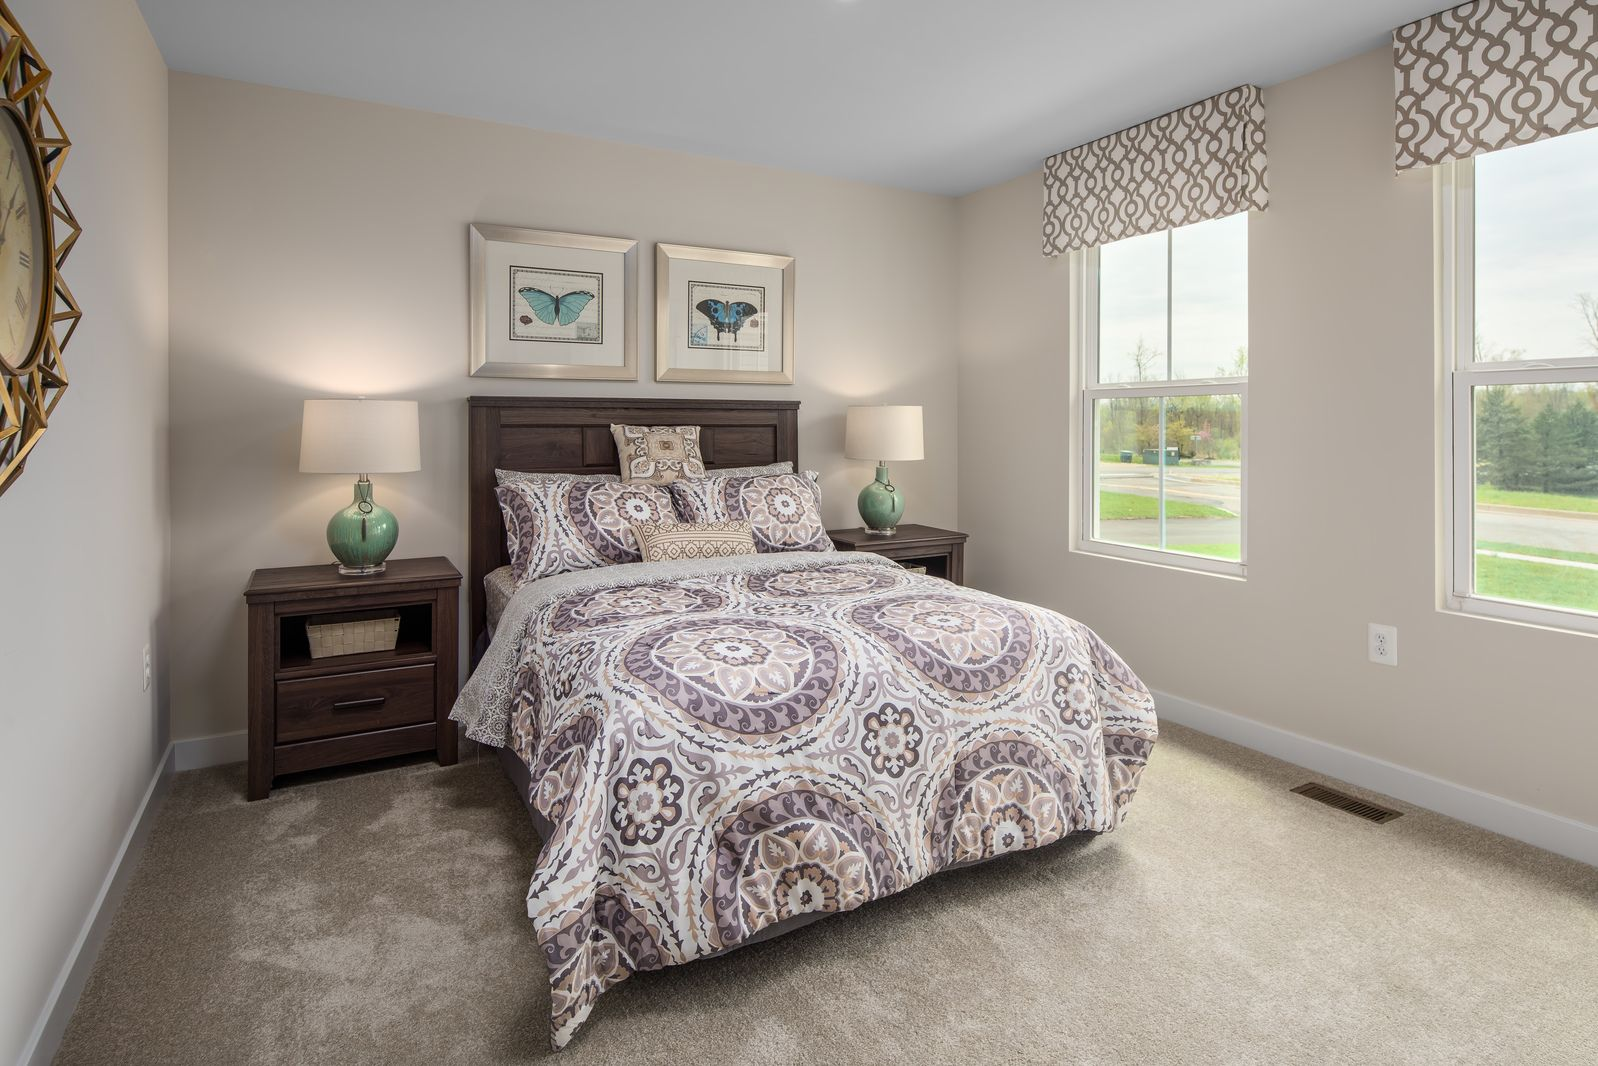 Bedroom featured in the Grand Cayman By Ryan Homes in Akron, OH